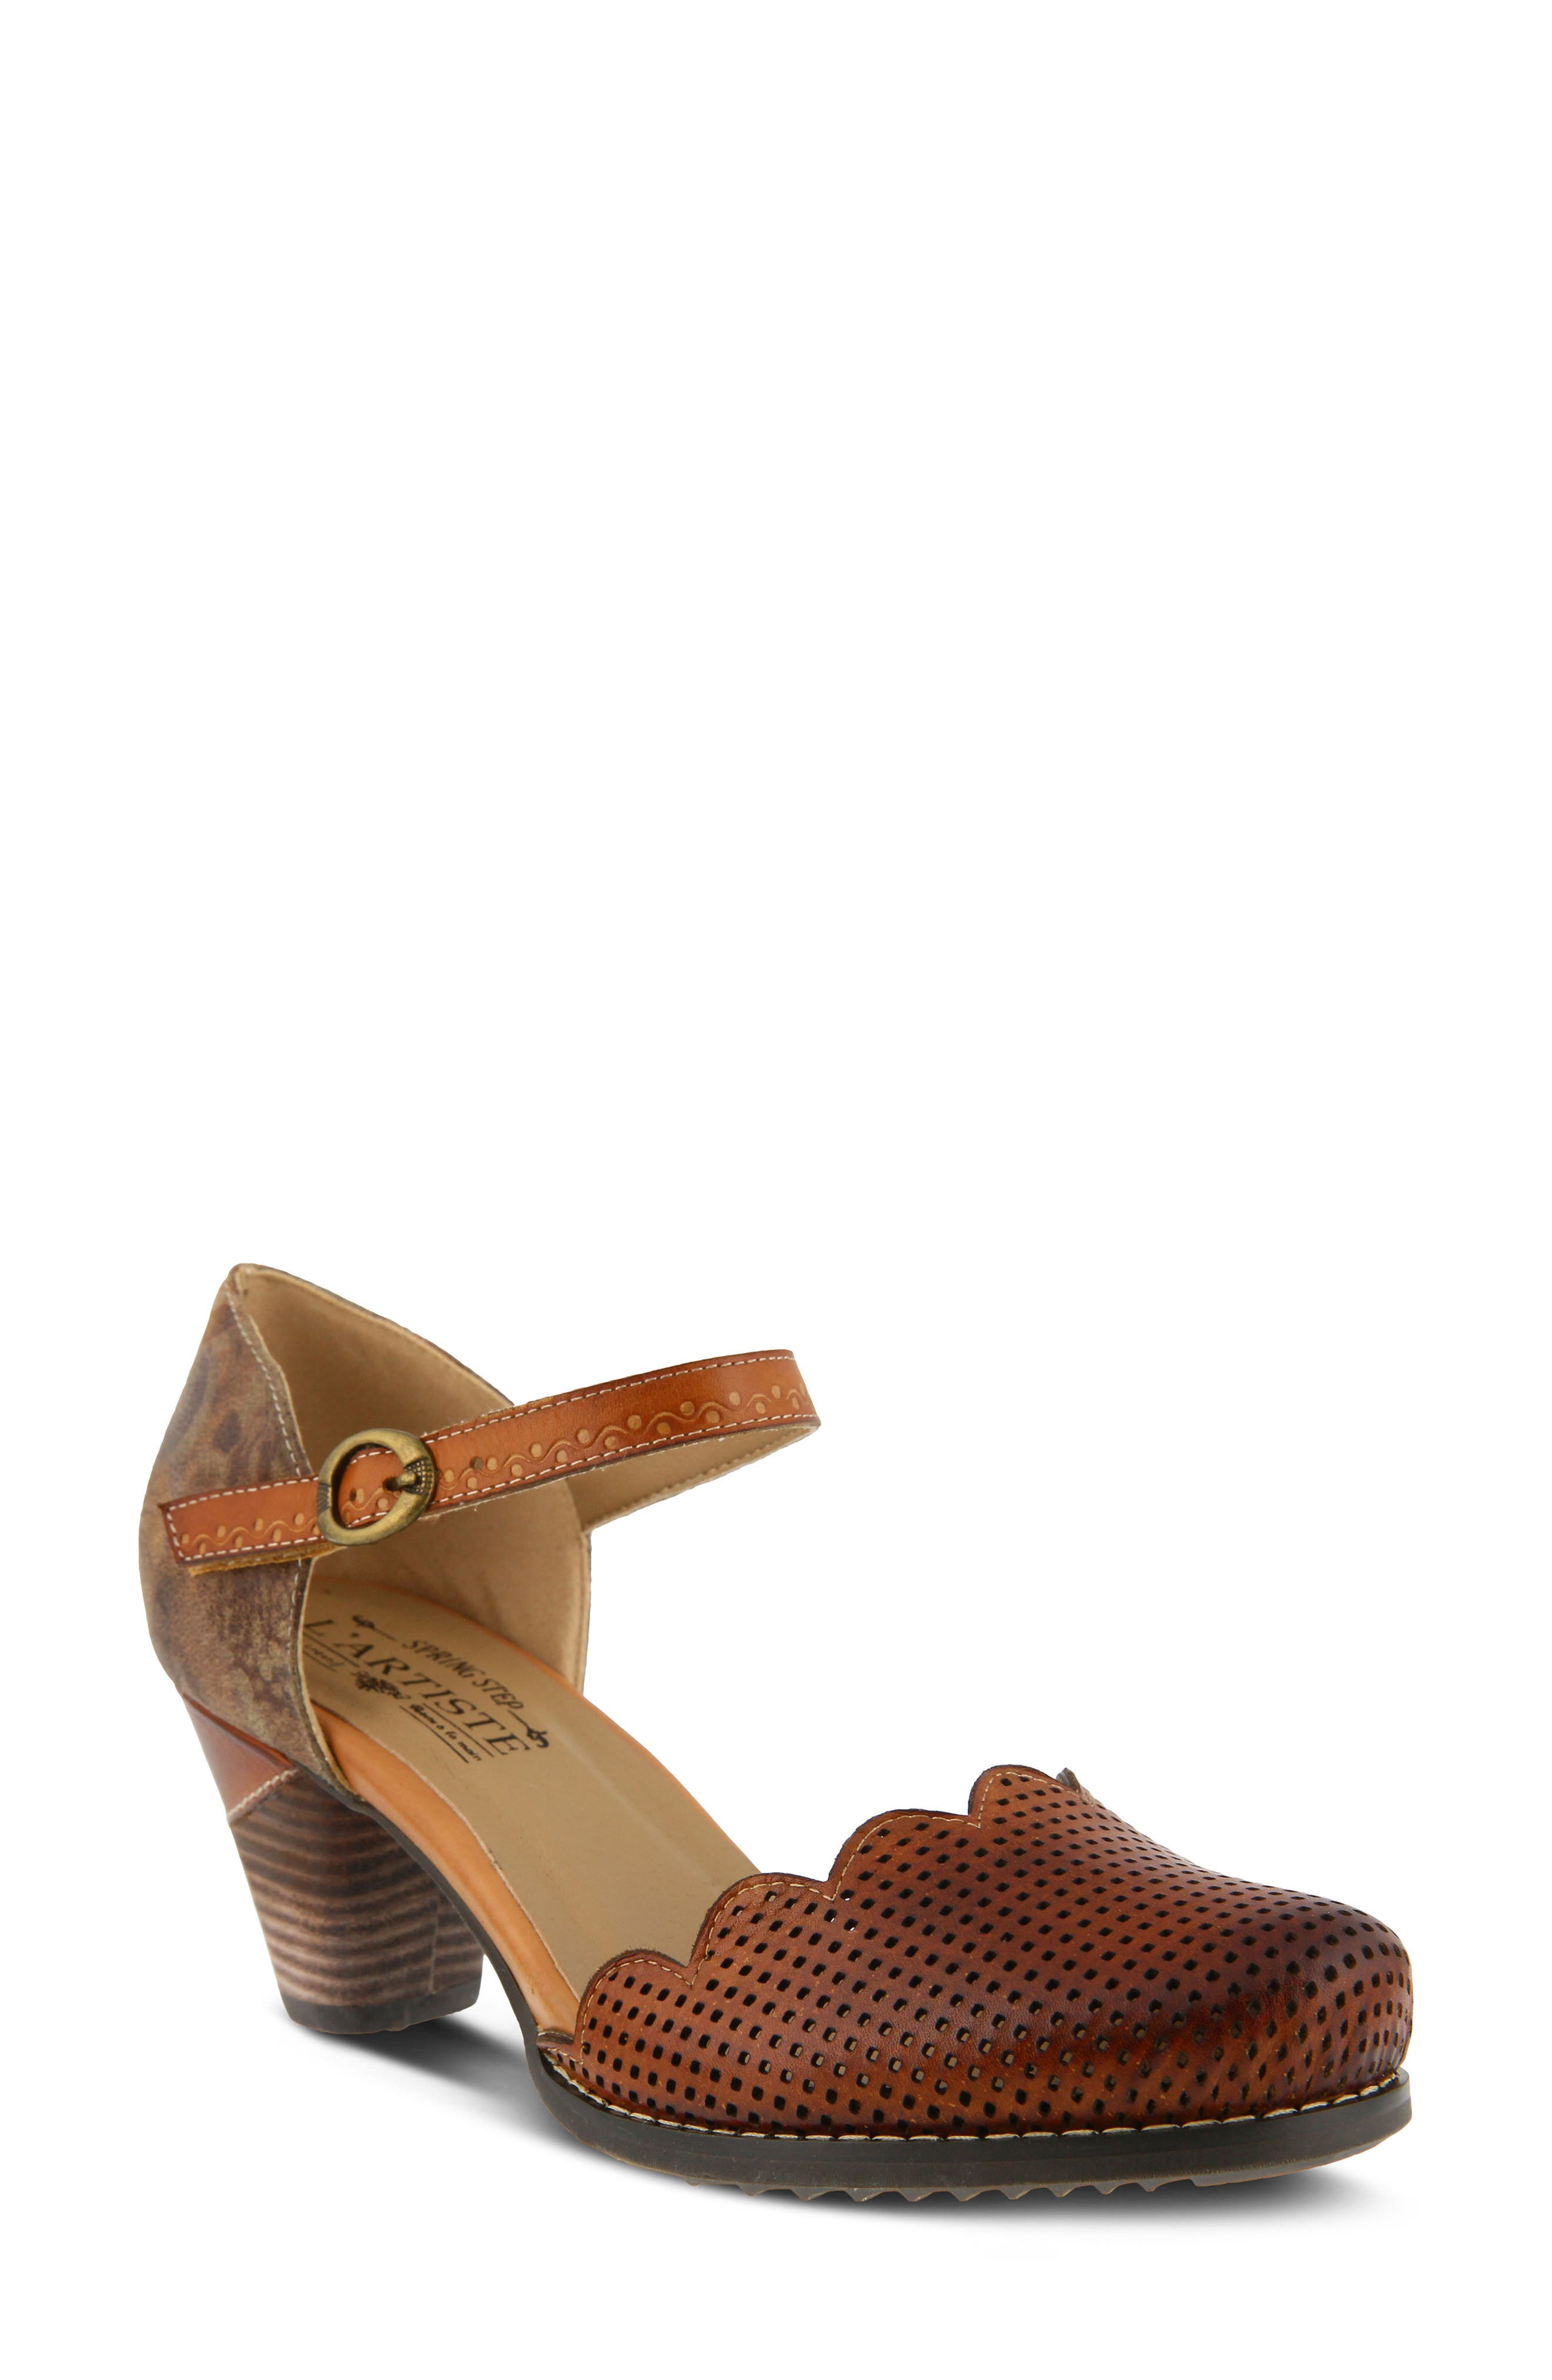 L'Artiste Parchelle Pump,                         Main,                         color, Camel Leather